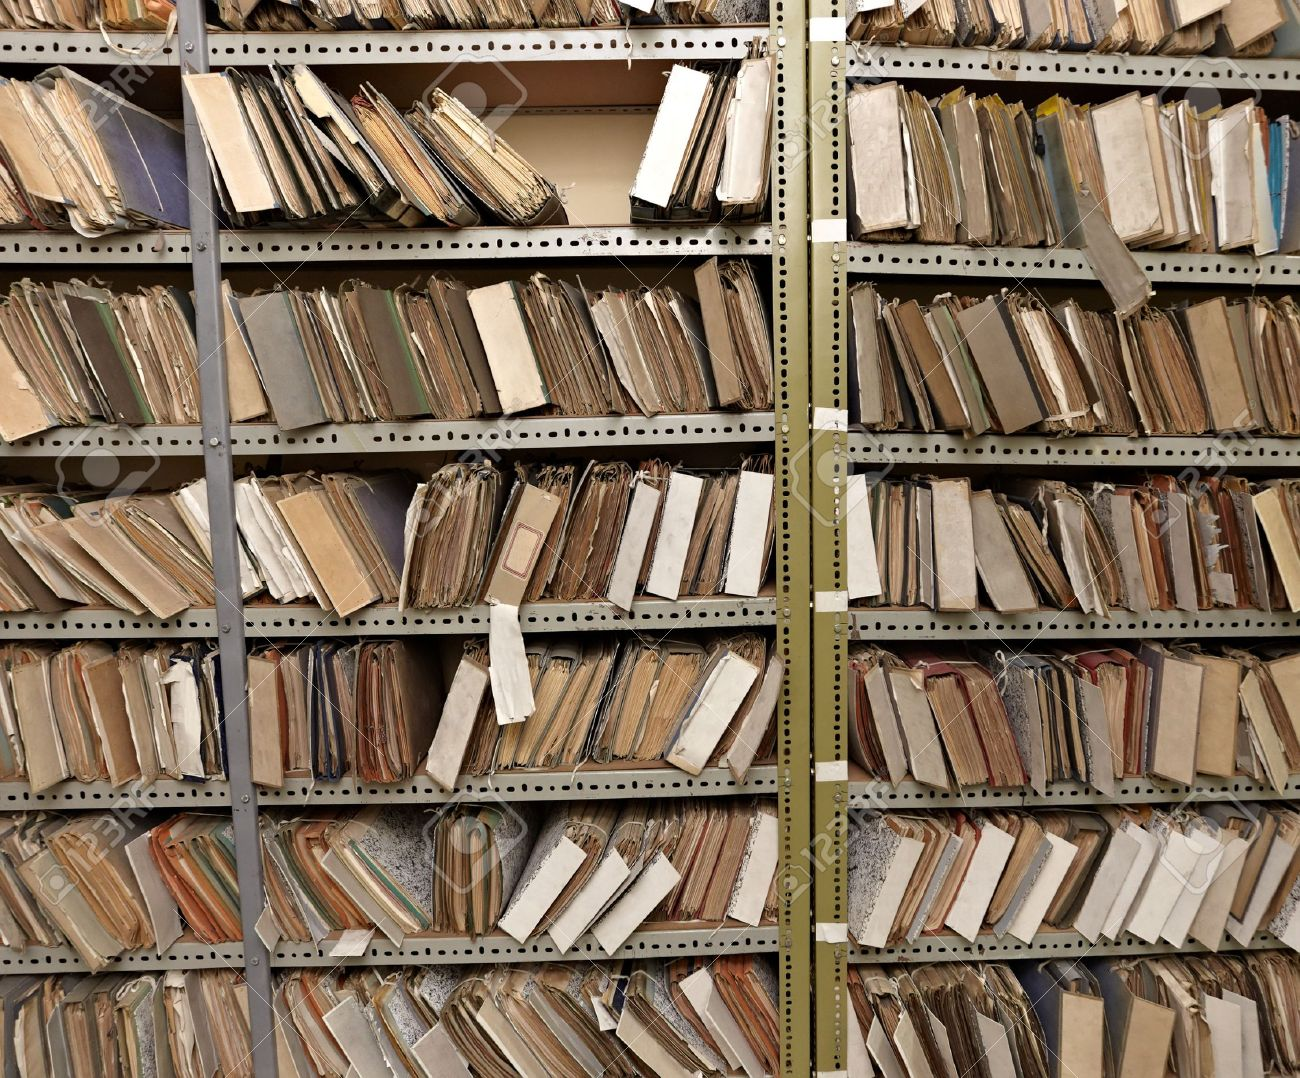 12271257-close-up-of-old-vintage-files-in-a-storage-room-Stock-Photo-file-archive-old